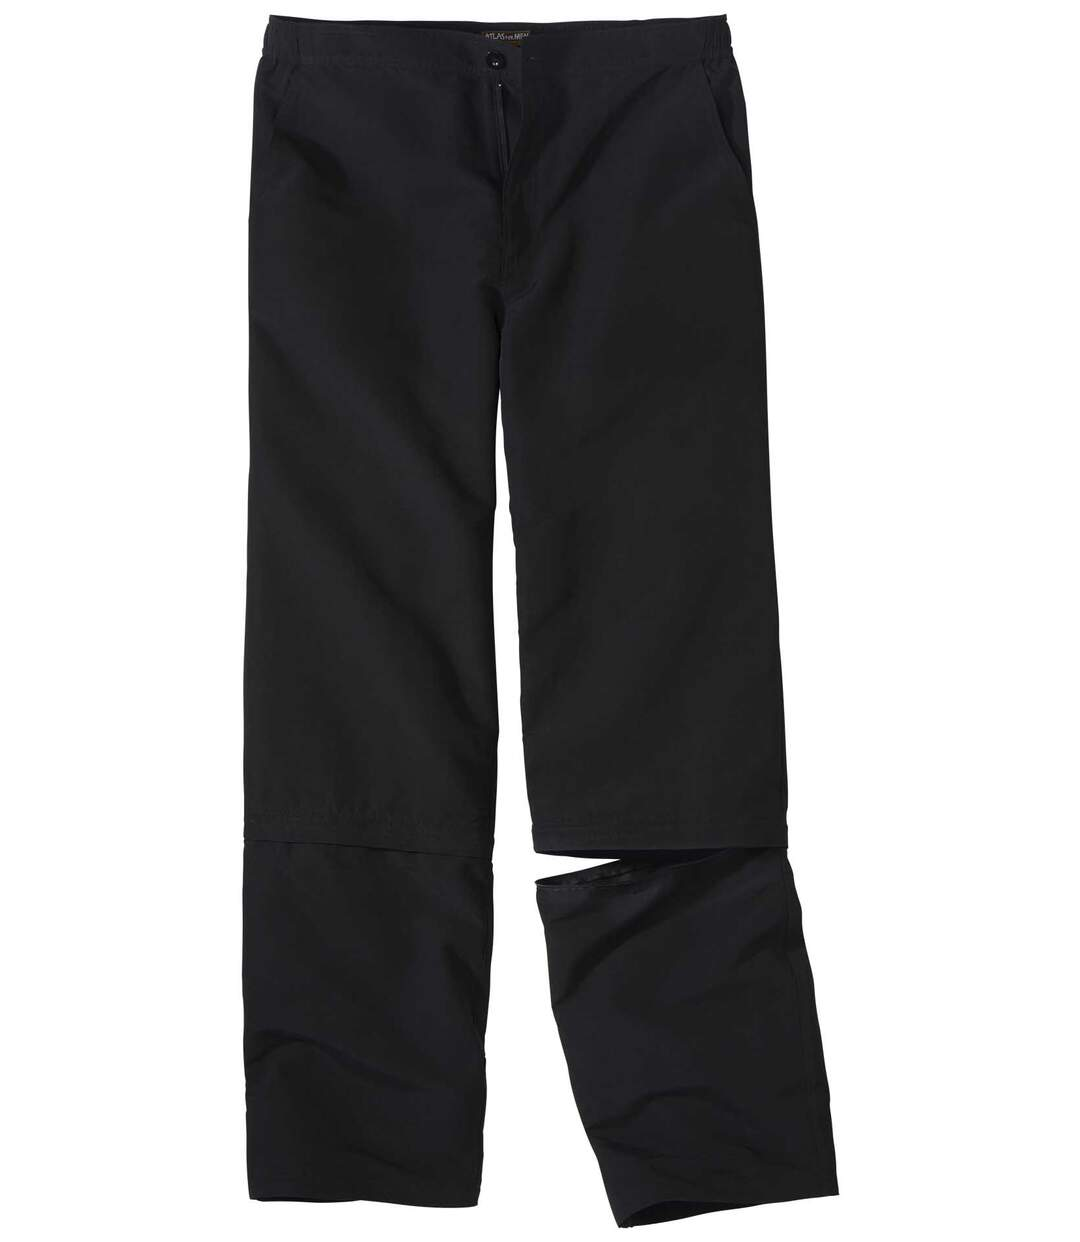 Men's Black 2-in-1 Convertible Microfibre Trousers